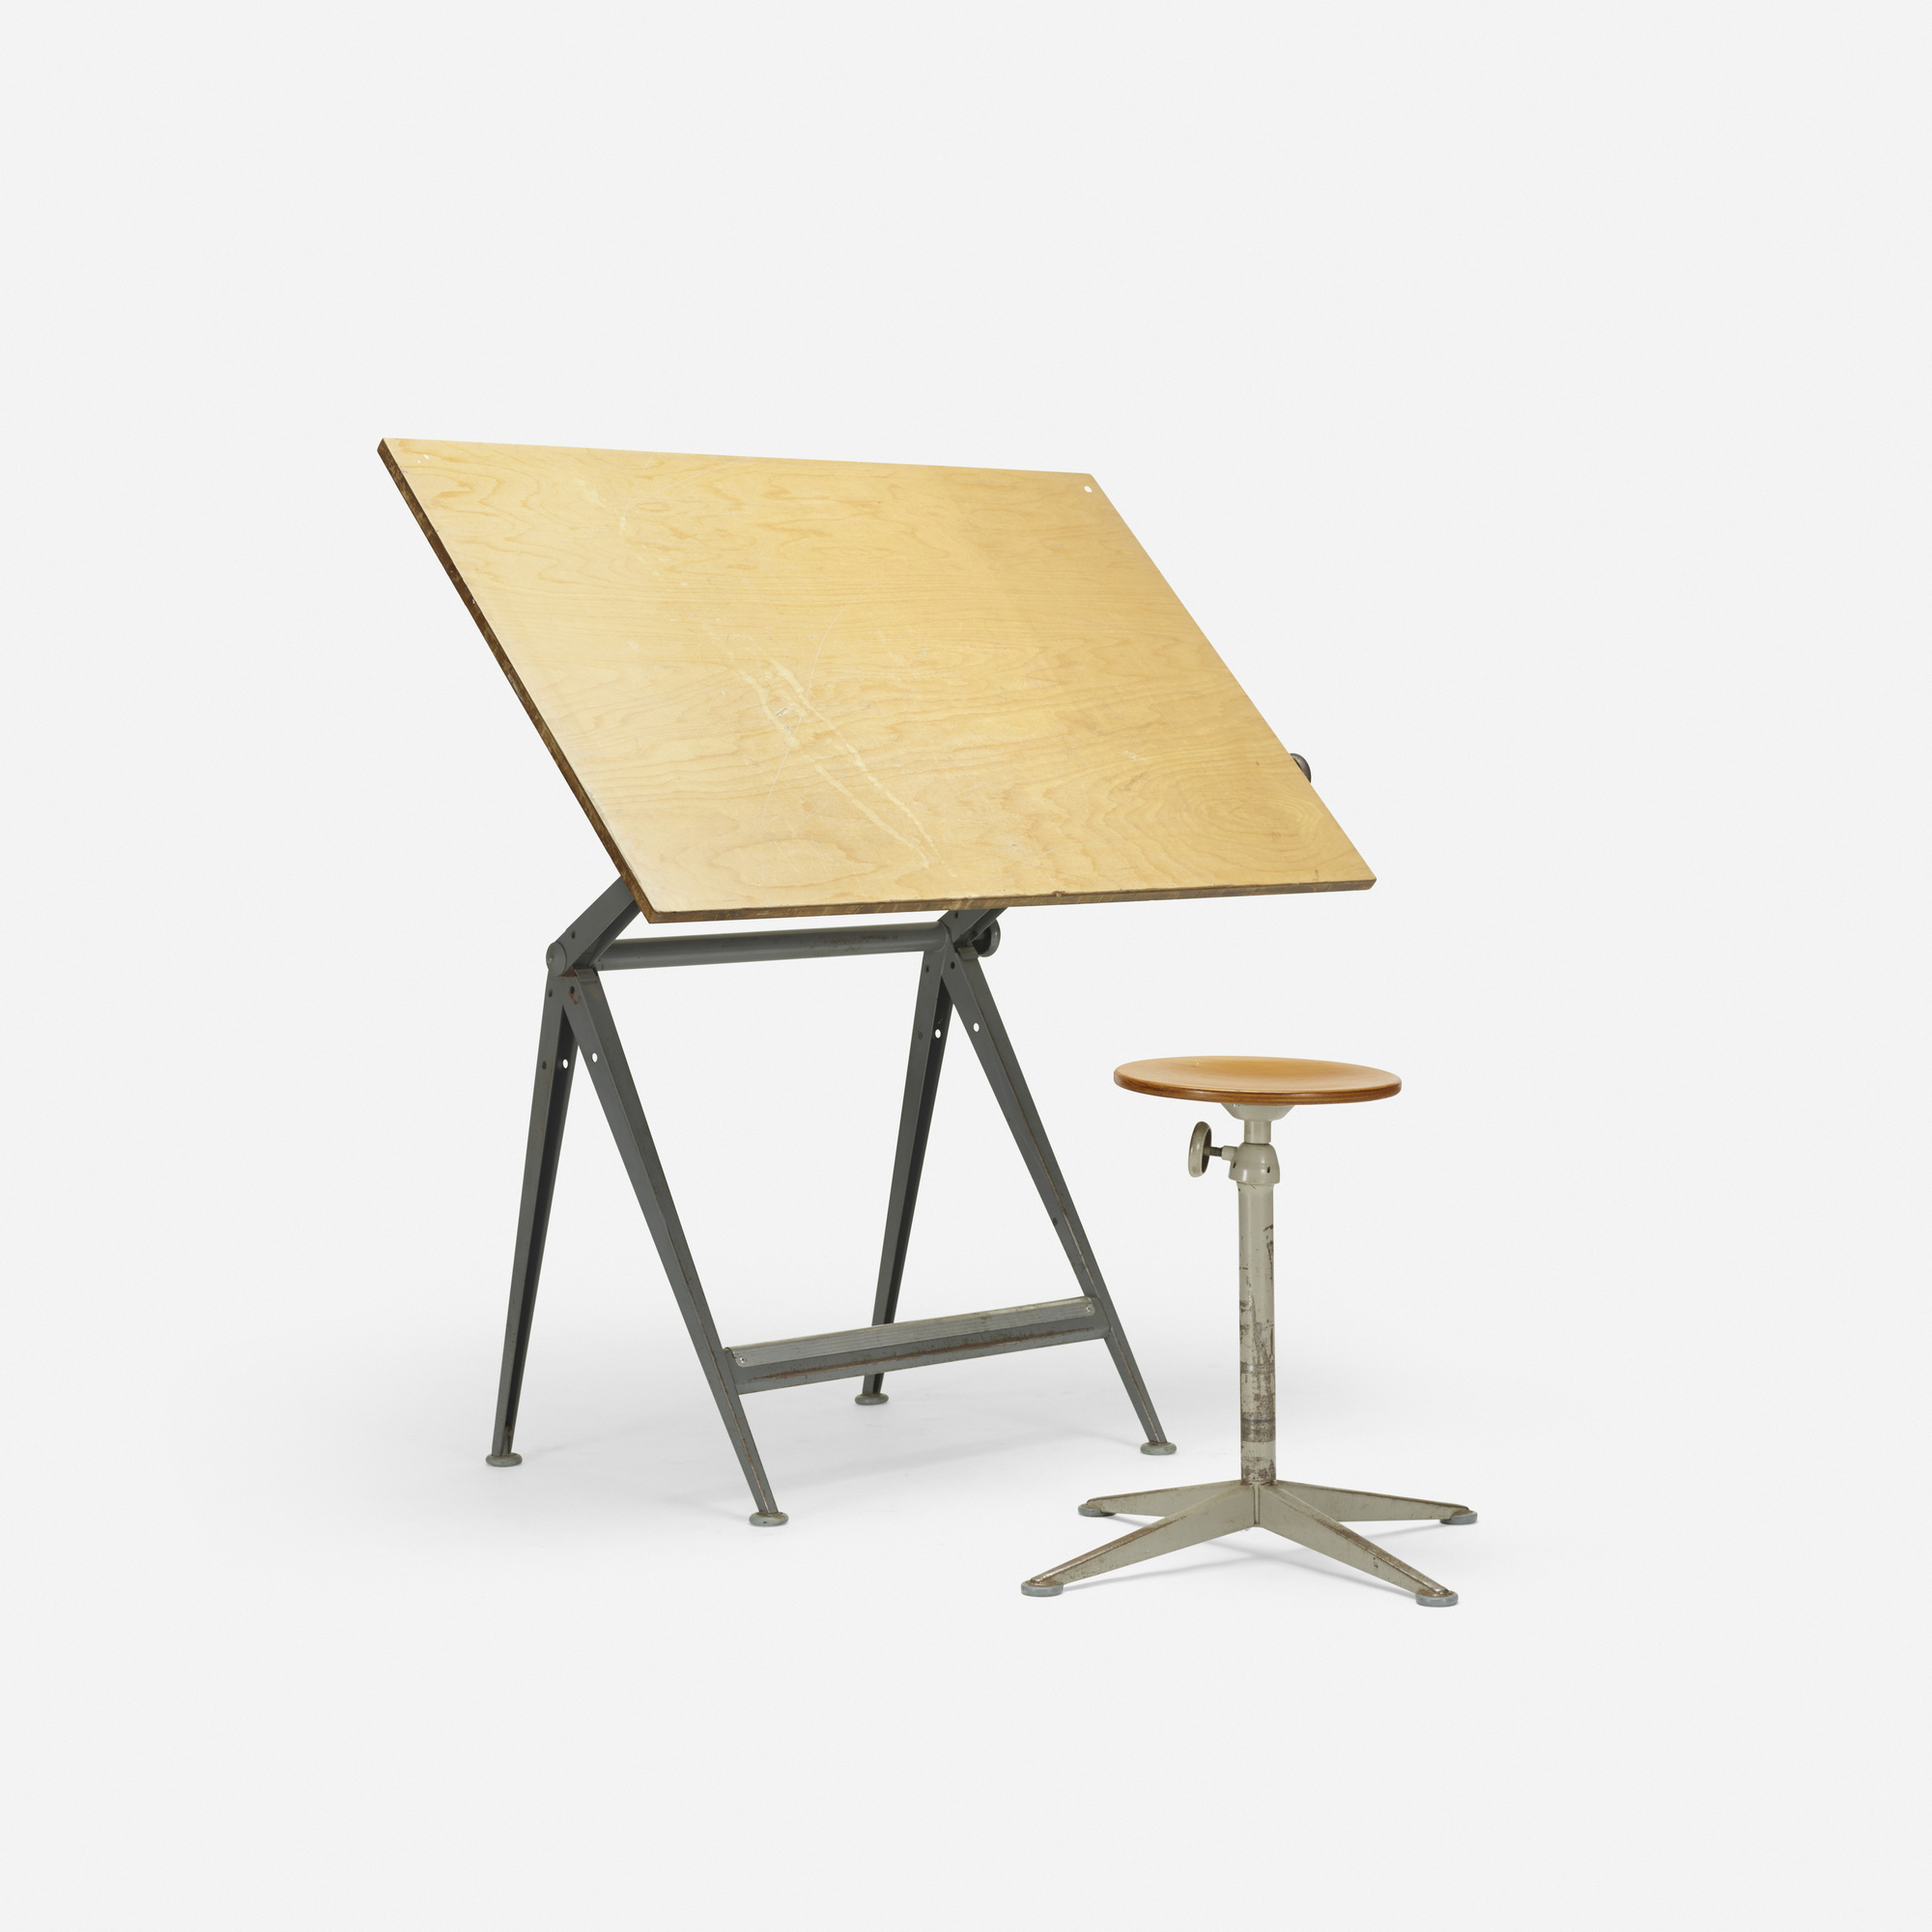 drafting studio on vision save discount utrecht glass at tiltable designs center with pin table stool drawers more top